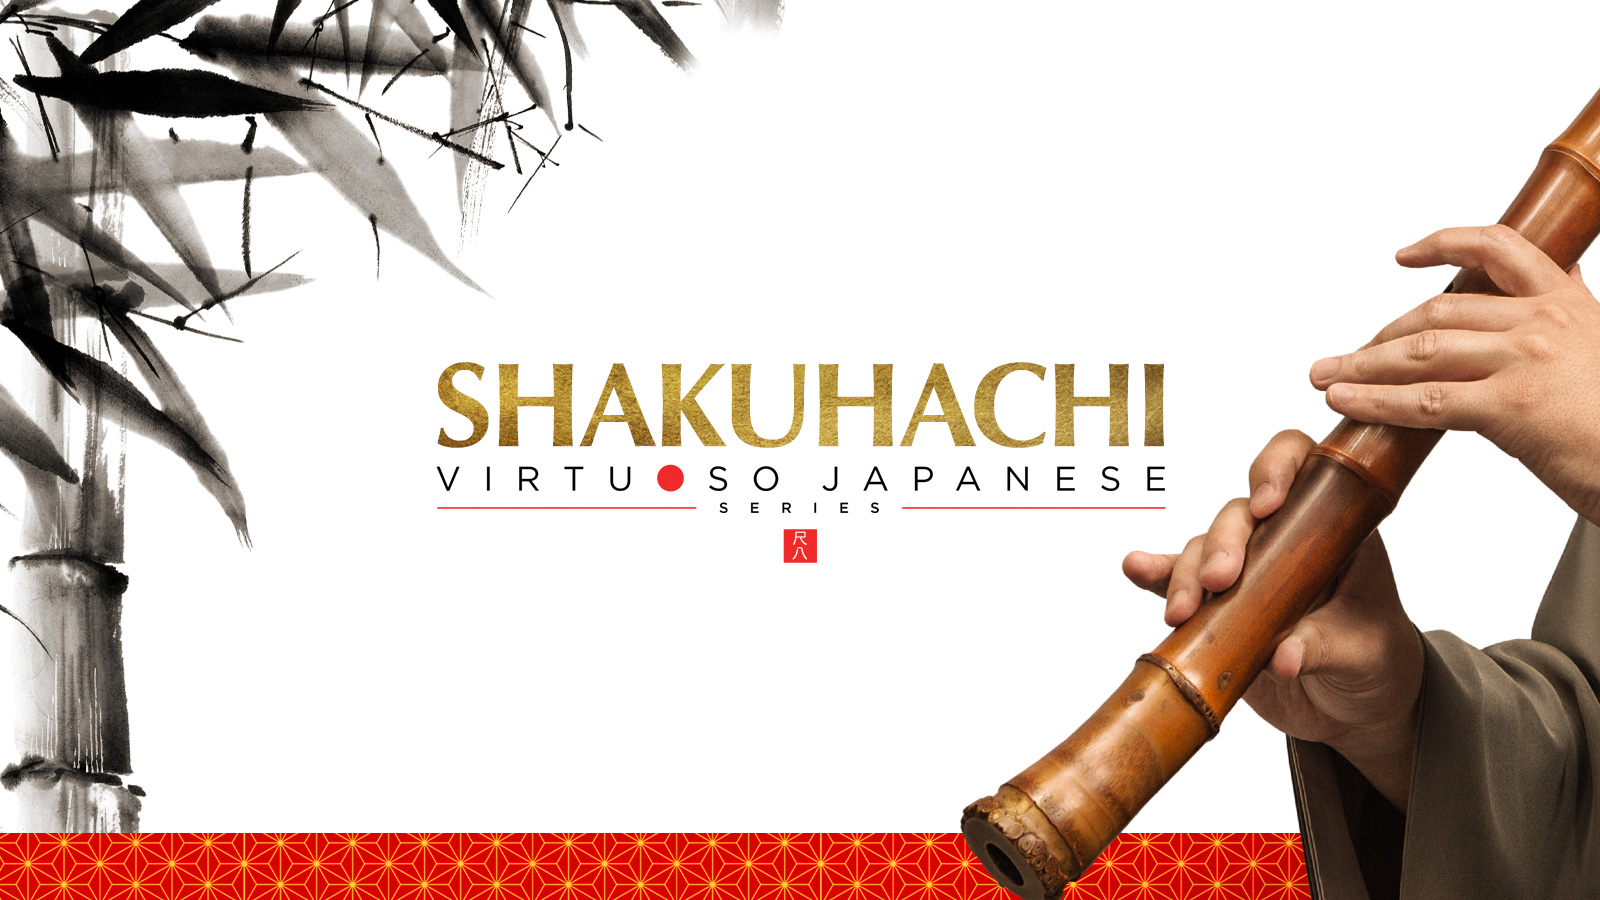 8/31発売!Sonica Instruments – Virtuoso Japanese Series Vol.3 SHAKUHACHI